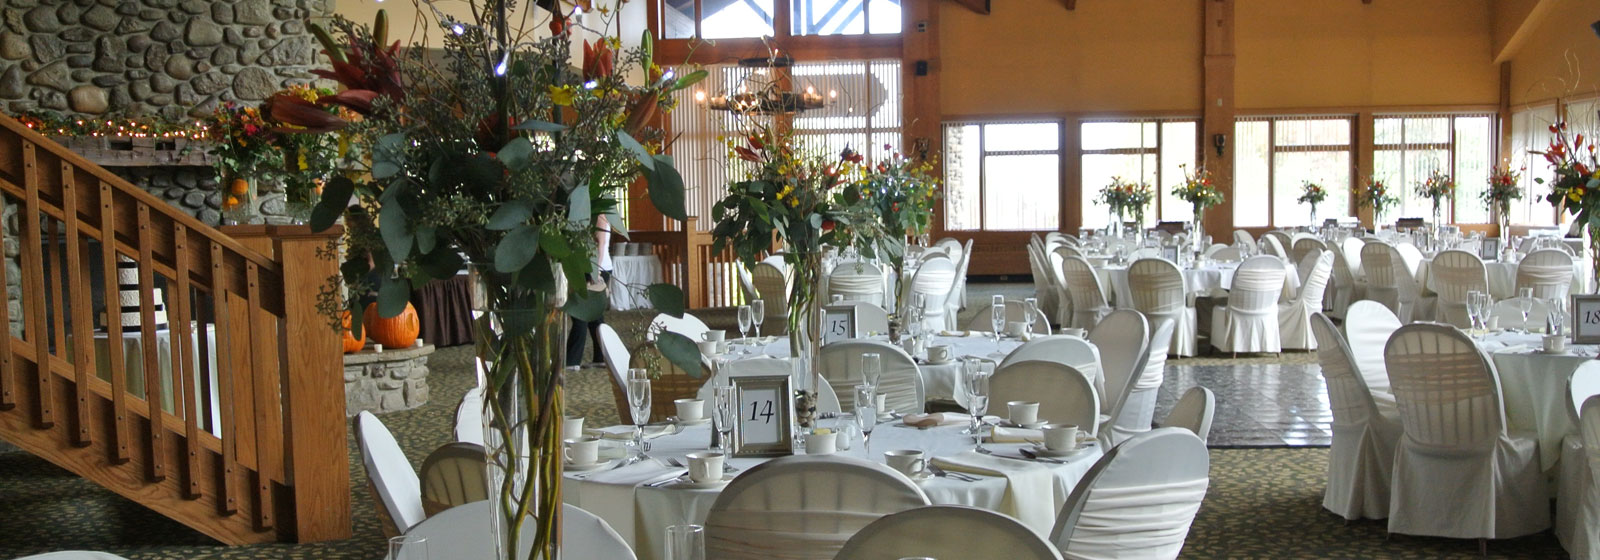 Wedding setup at Yodeler Lodge